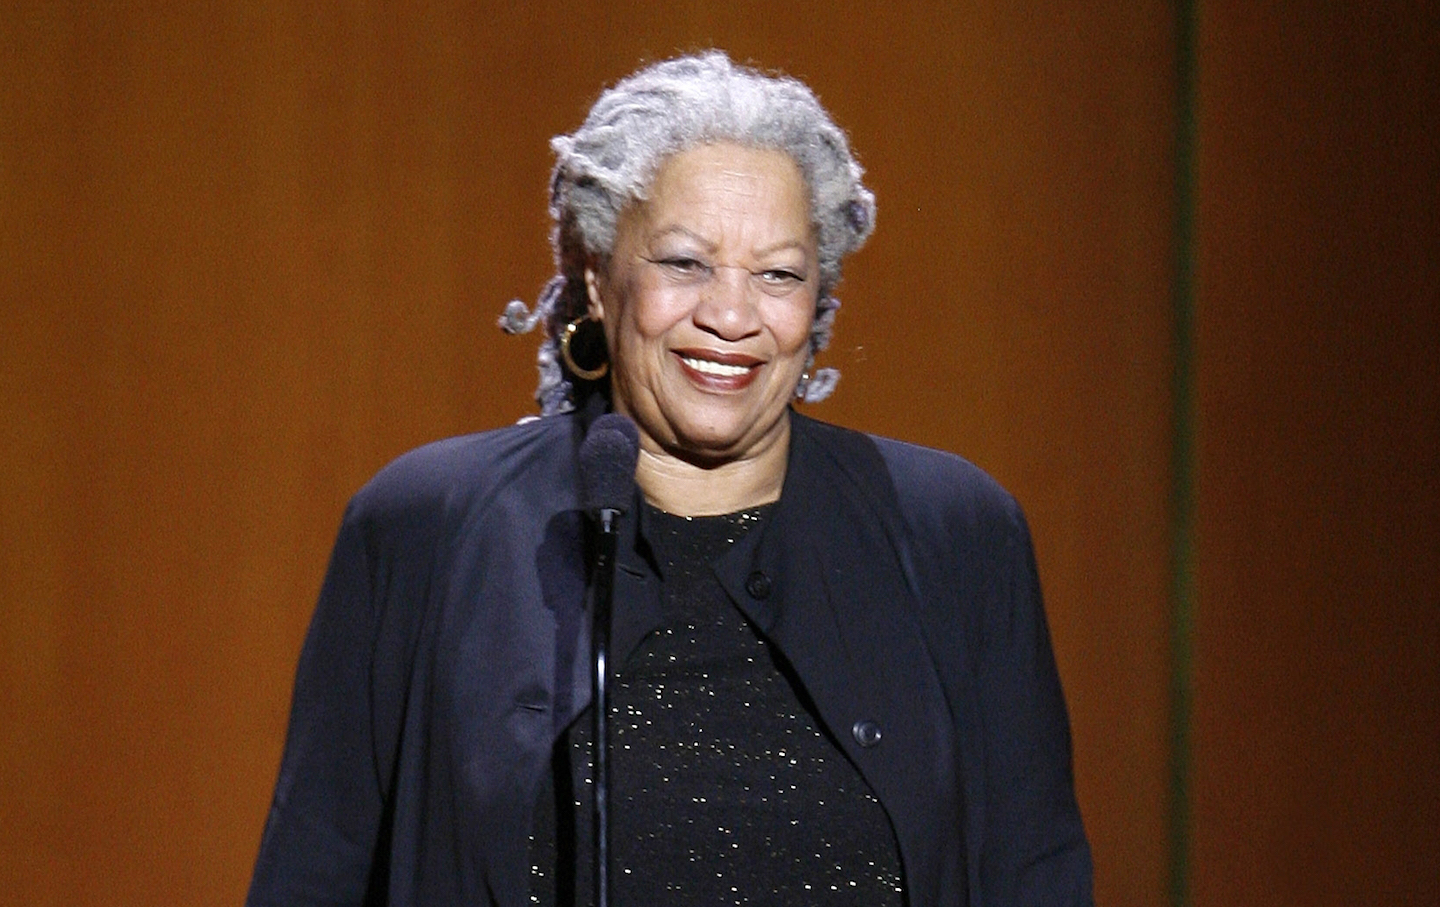 Toni Morrison, Visionary Author and Nobel Laureate, Dies at 88